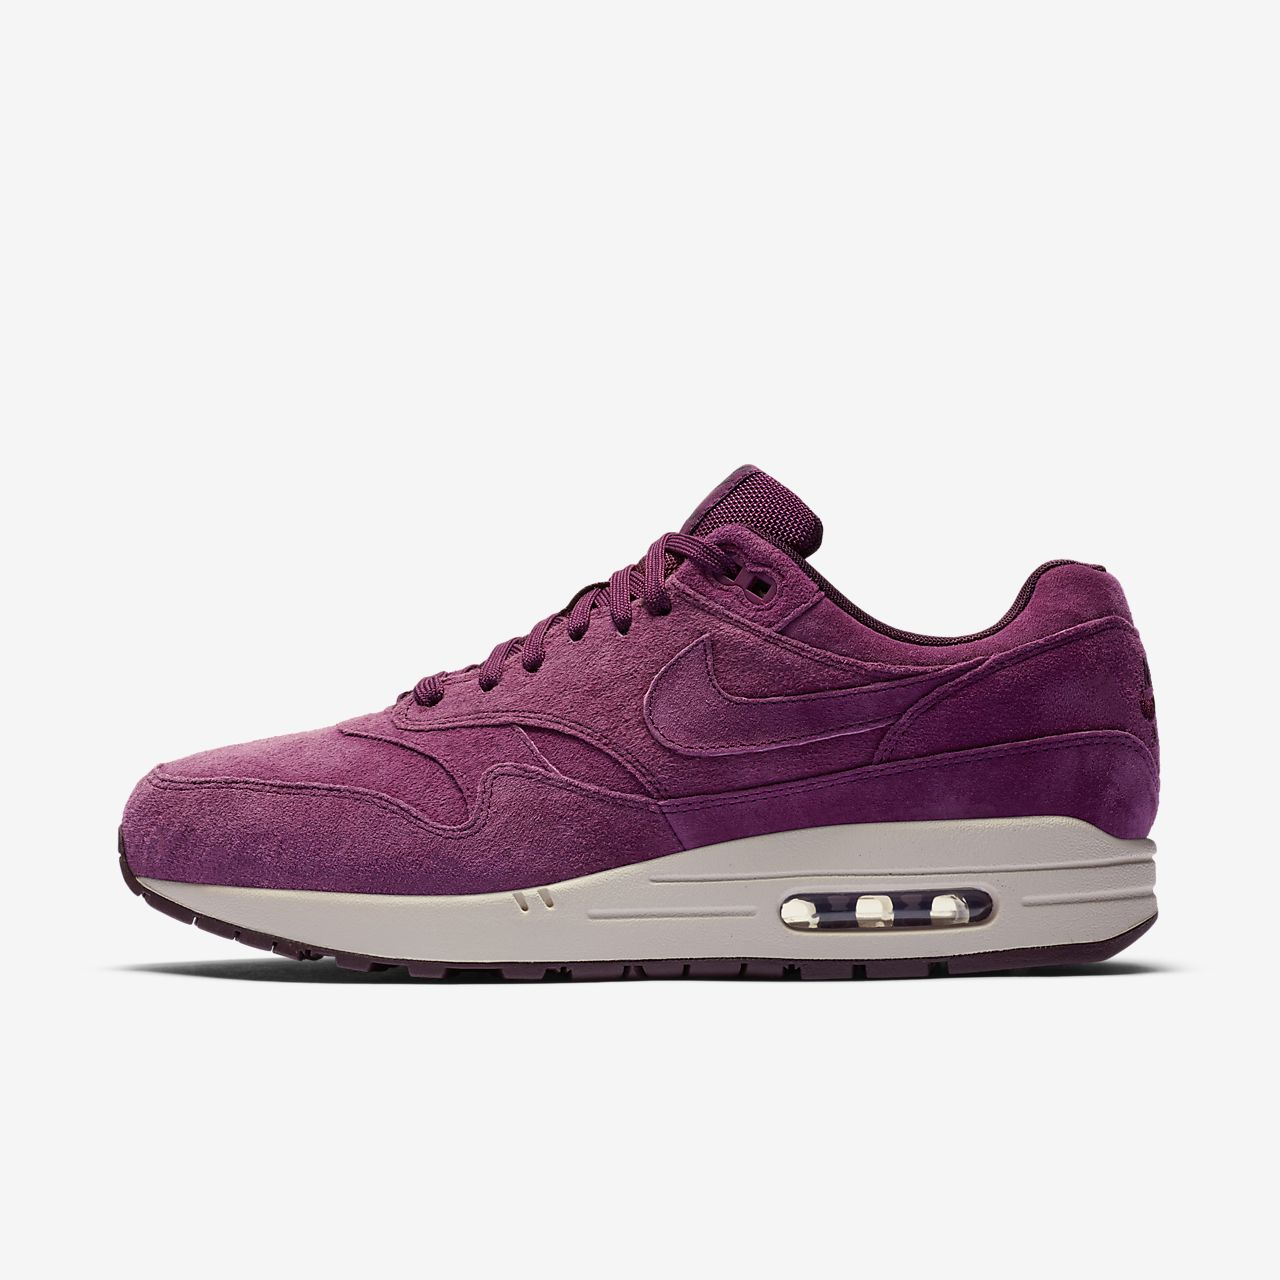 lowest price 77bdd 12401 Nike Air Max 1 Premium